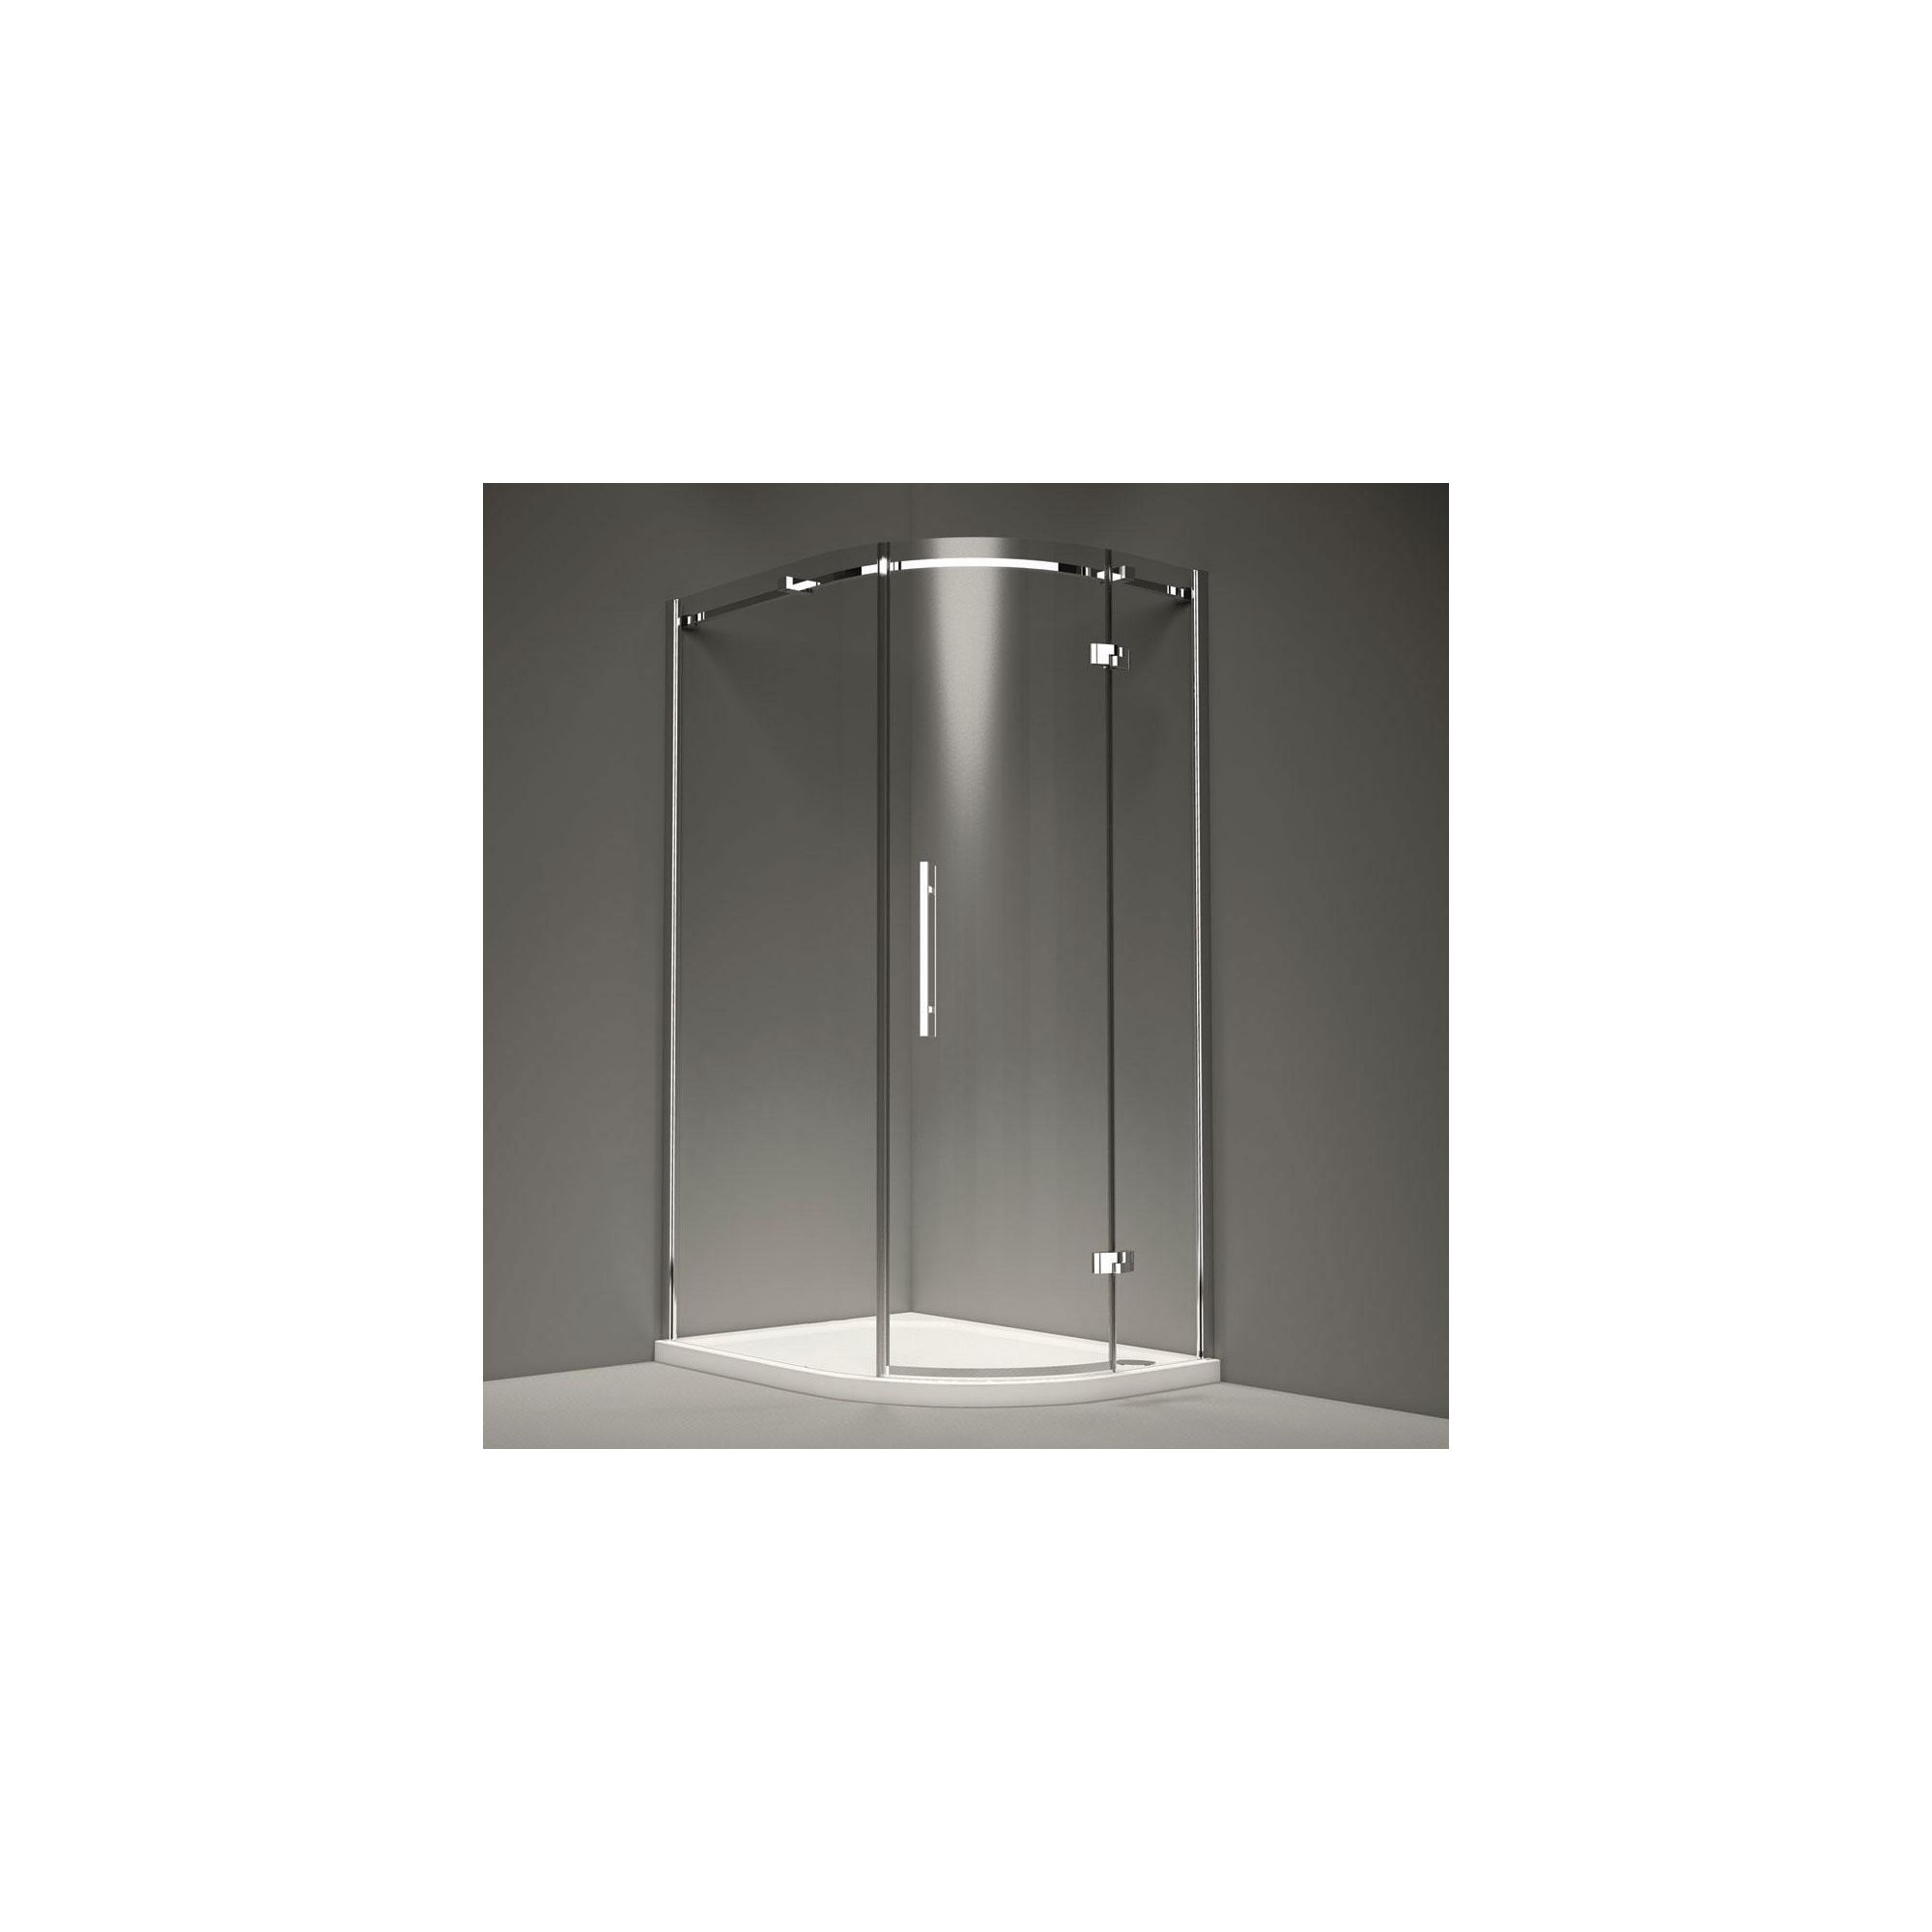 Merlyn Series 9 Single Quadrant Shower Door, 1000mm x 1000mm, 8mm Glass, Right Handed at Tesco Direct